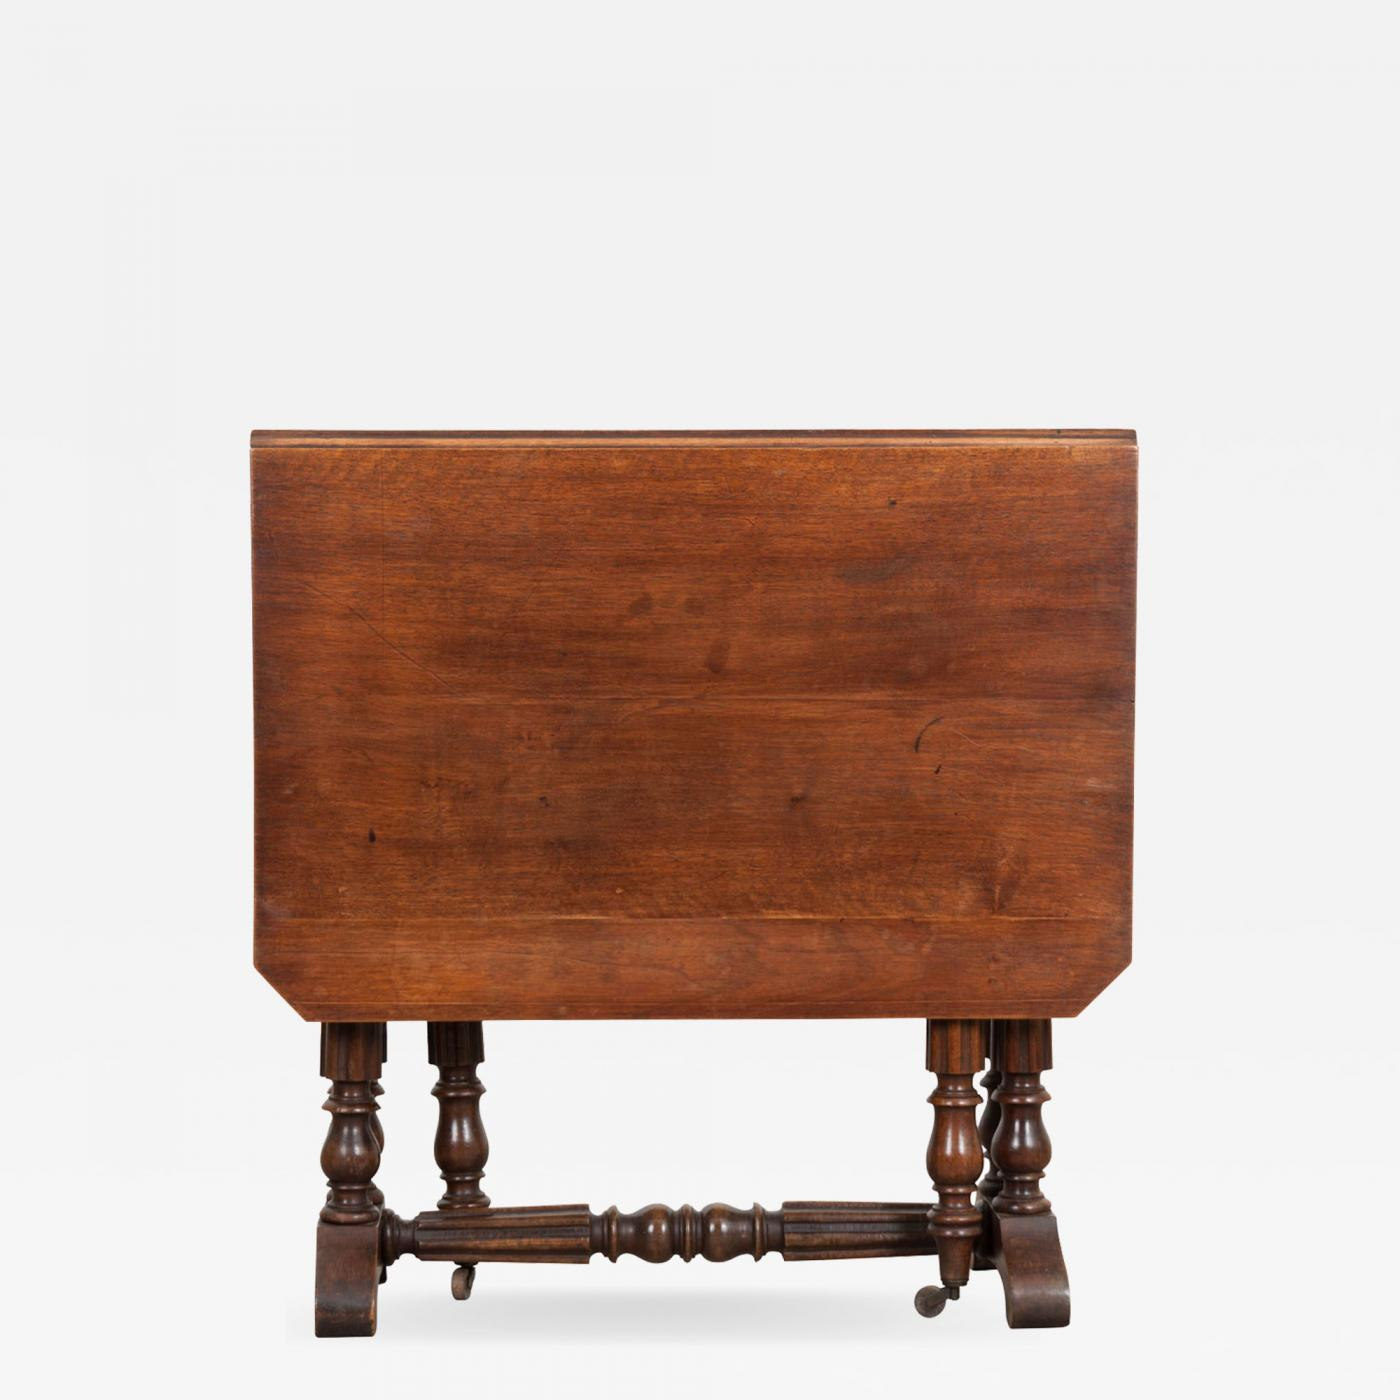 English 19th Century William and Mary-Style Walnut Gate-Leg Dining Table